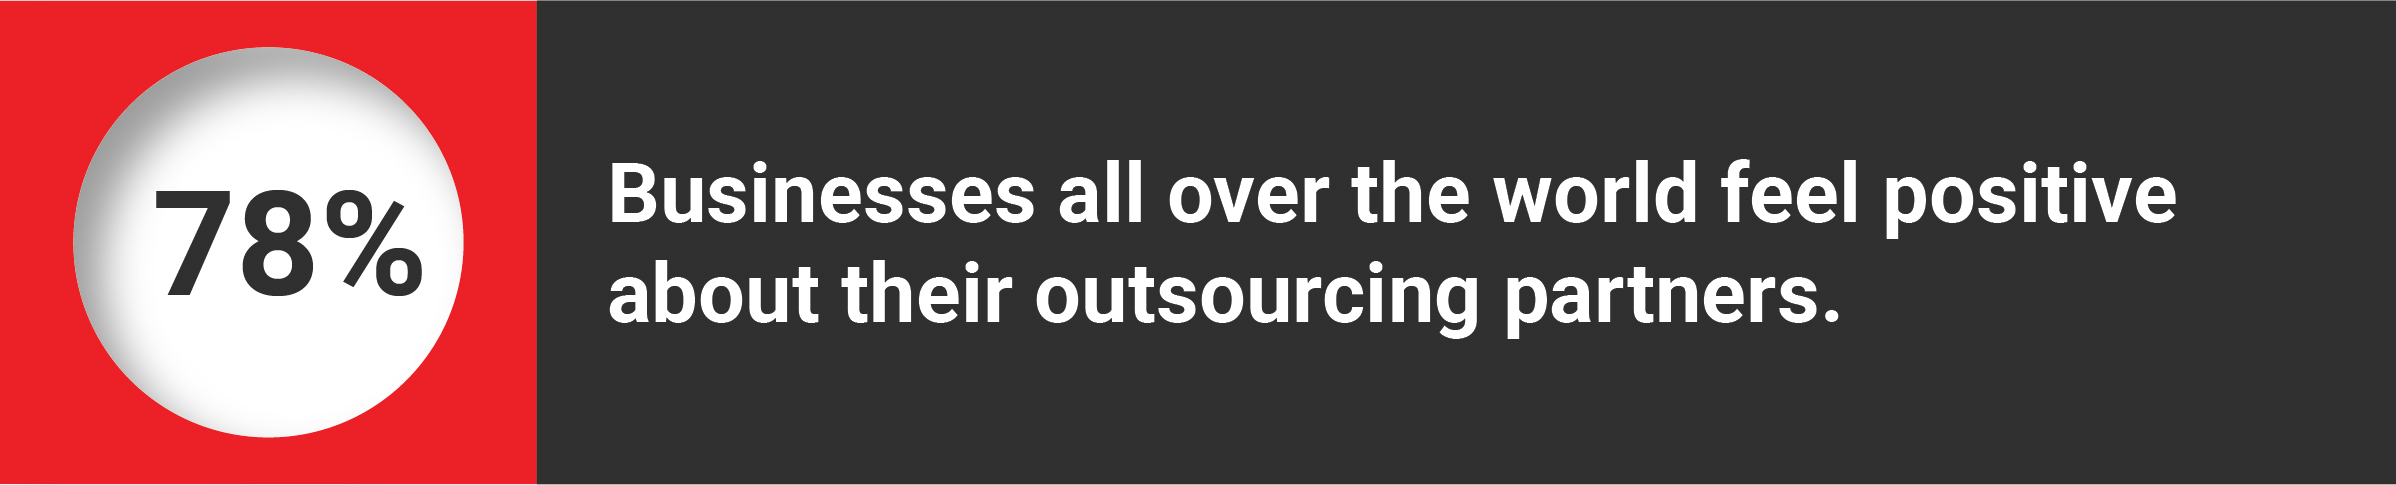 Crucial Outsourcing Statistics to Know in 2021